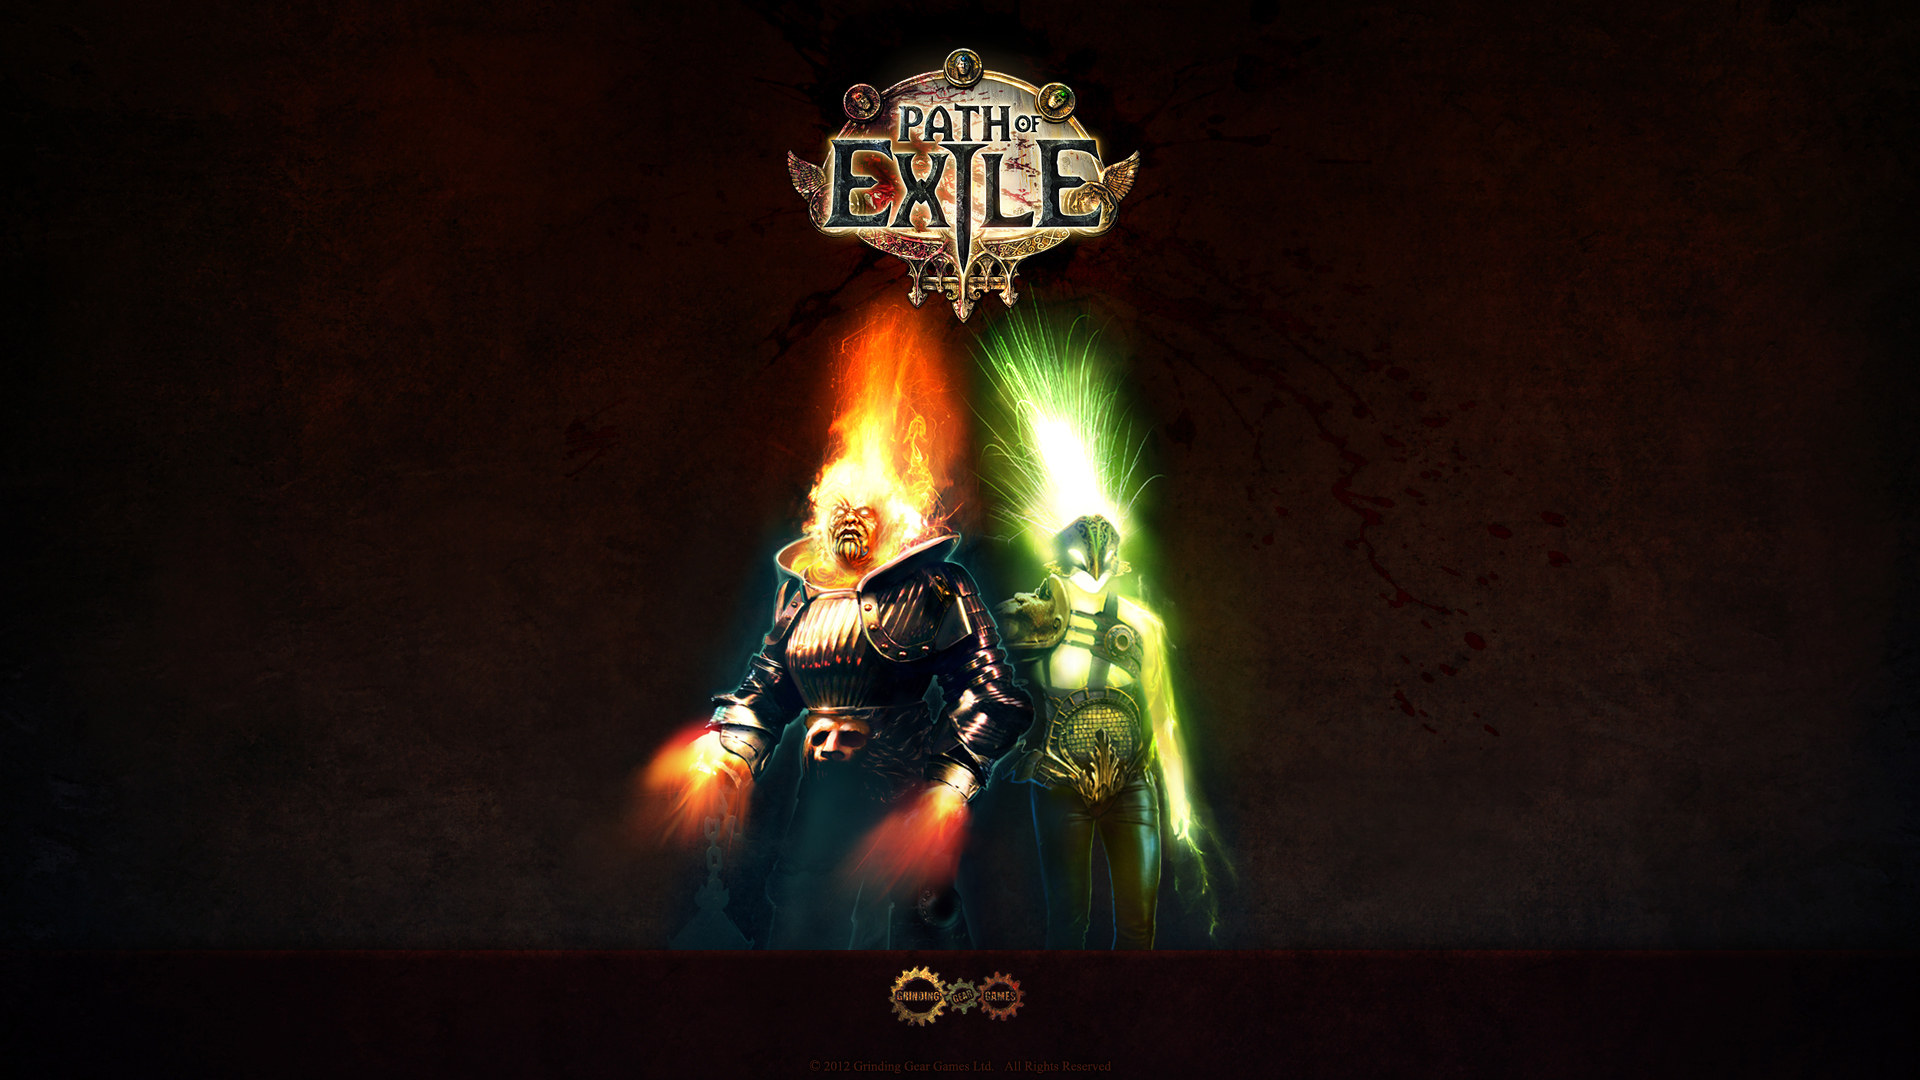 path-of-exile-wallpaper-hd